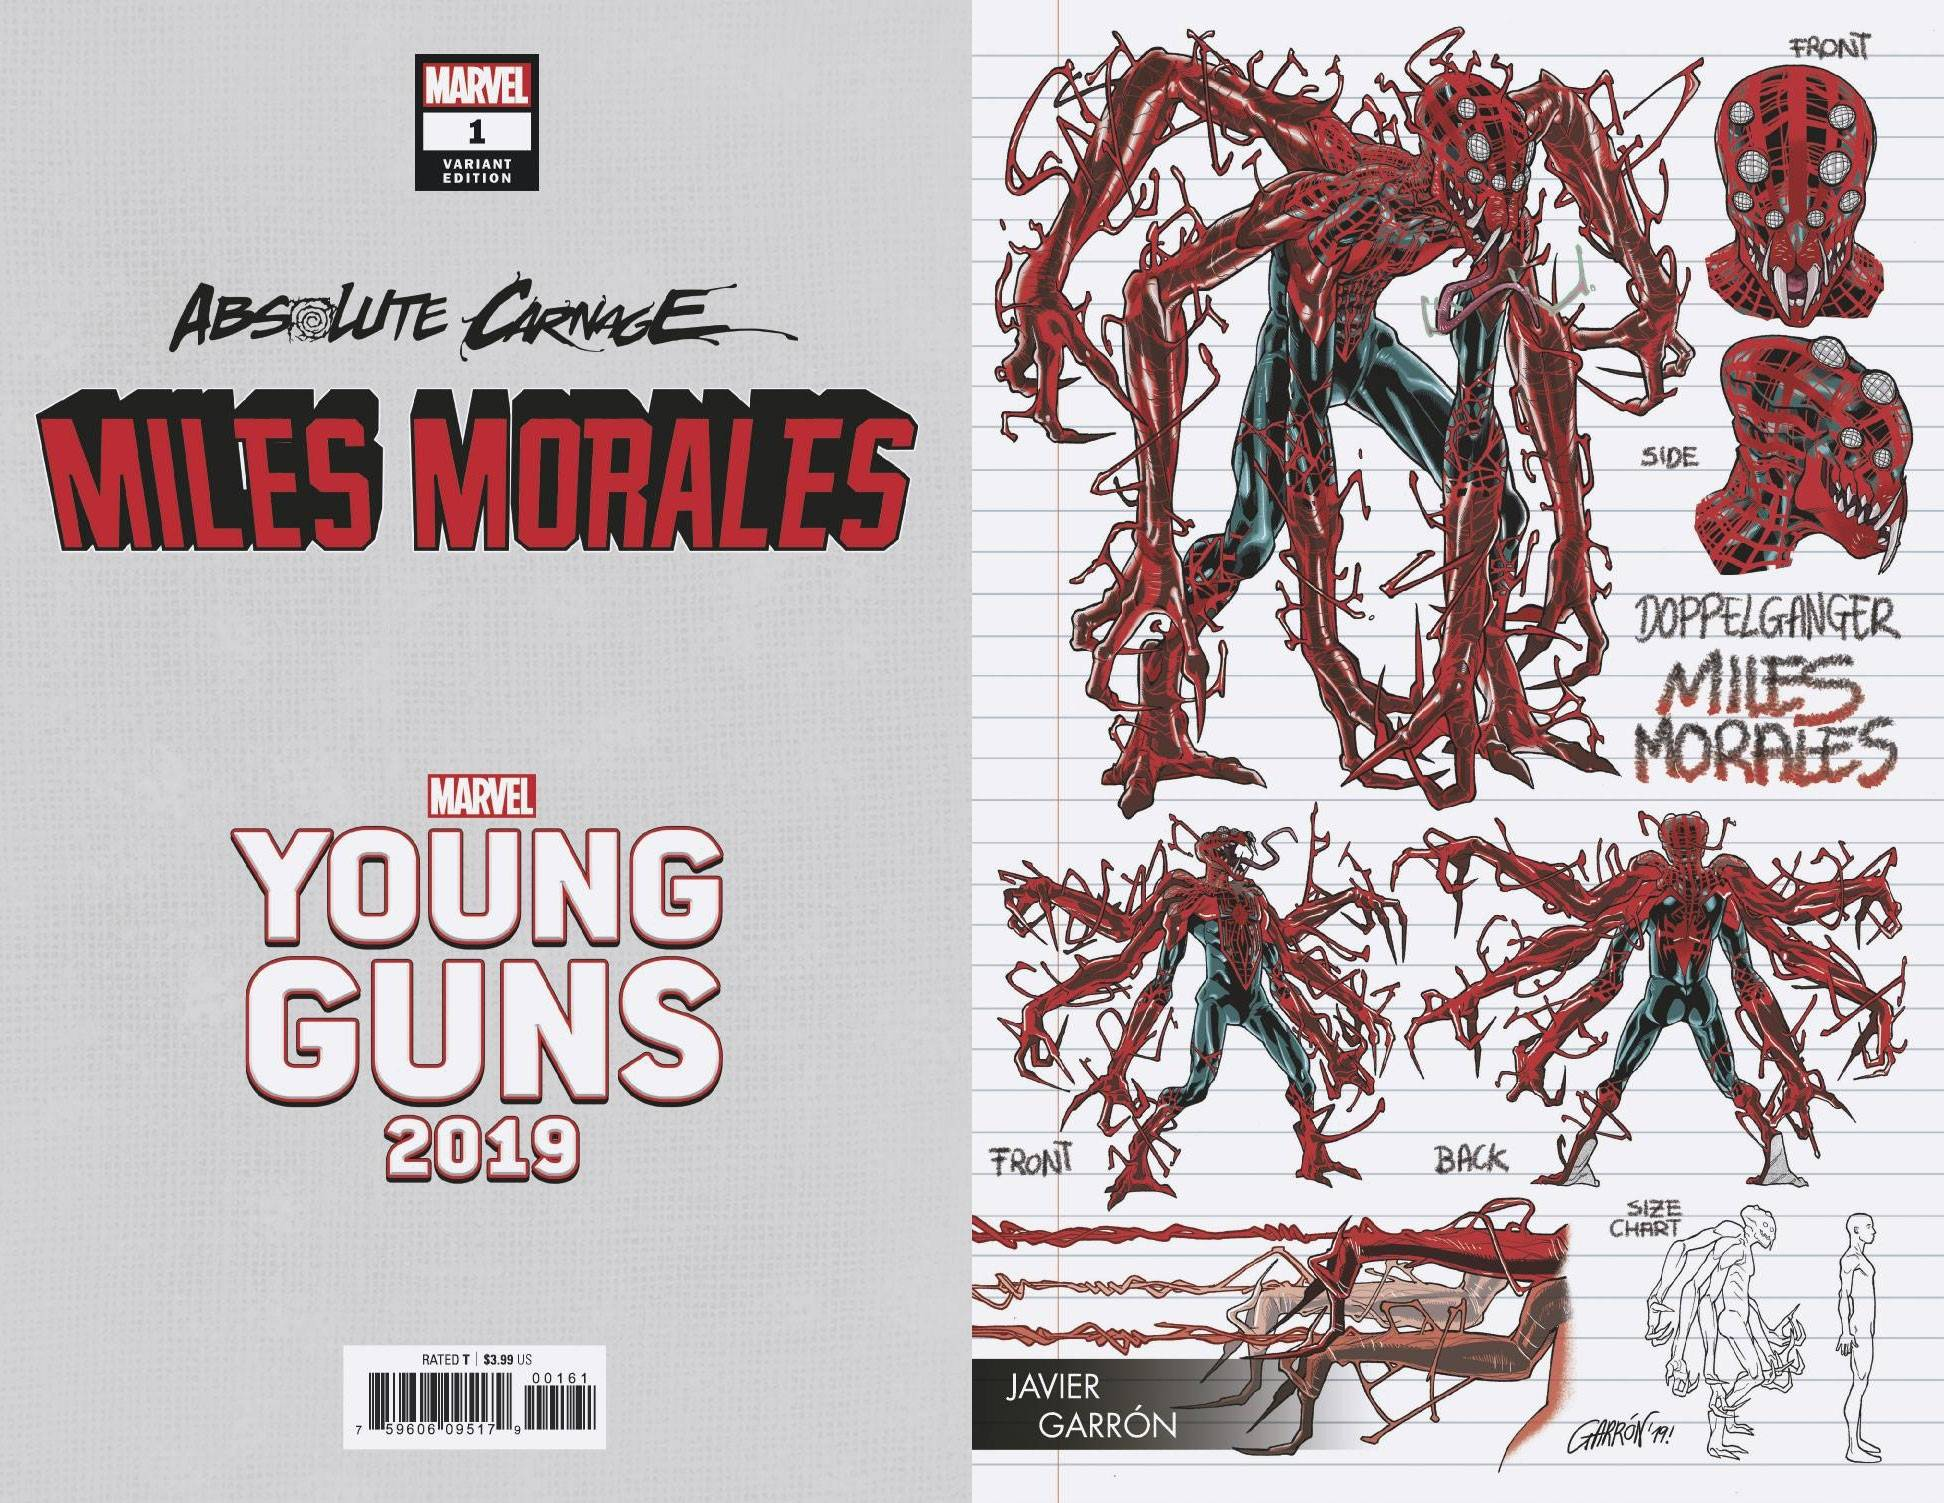 08/28/2019 ABSOLUTE CARNAGE MILES MORALES #1 (OF 3) GARRON YOUNG GUNS VARIANT